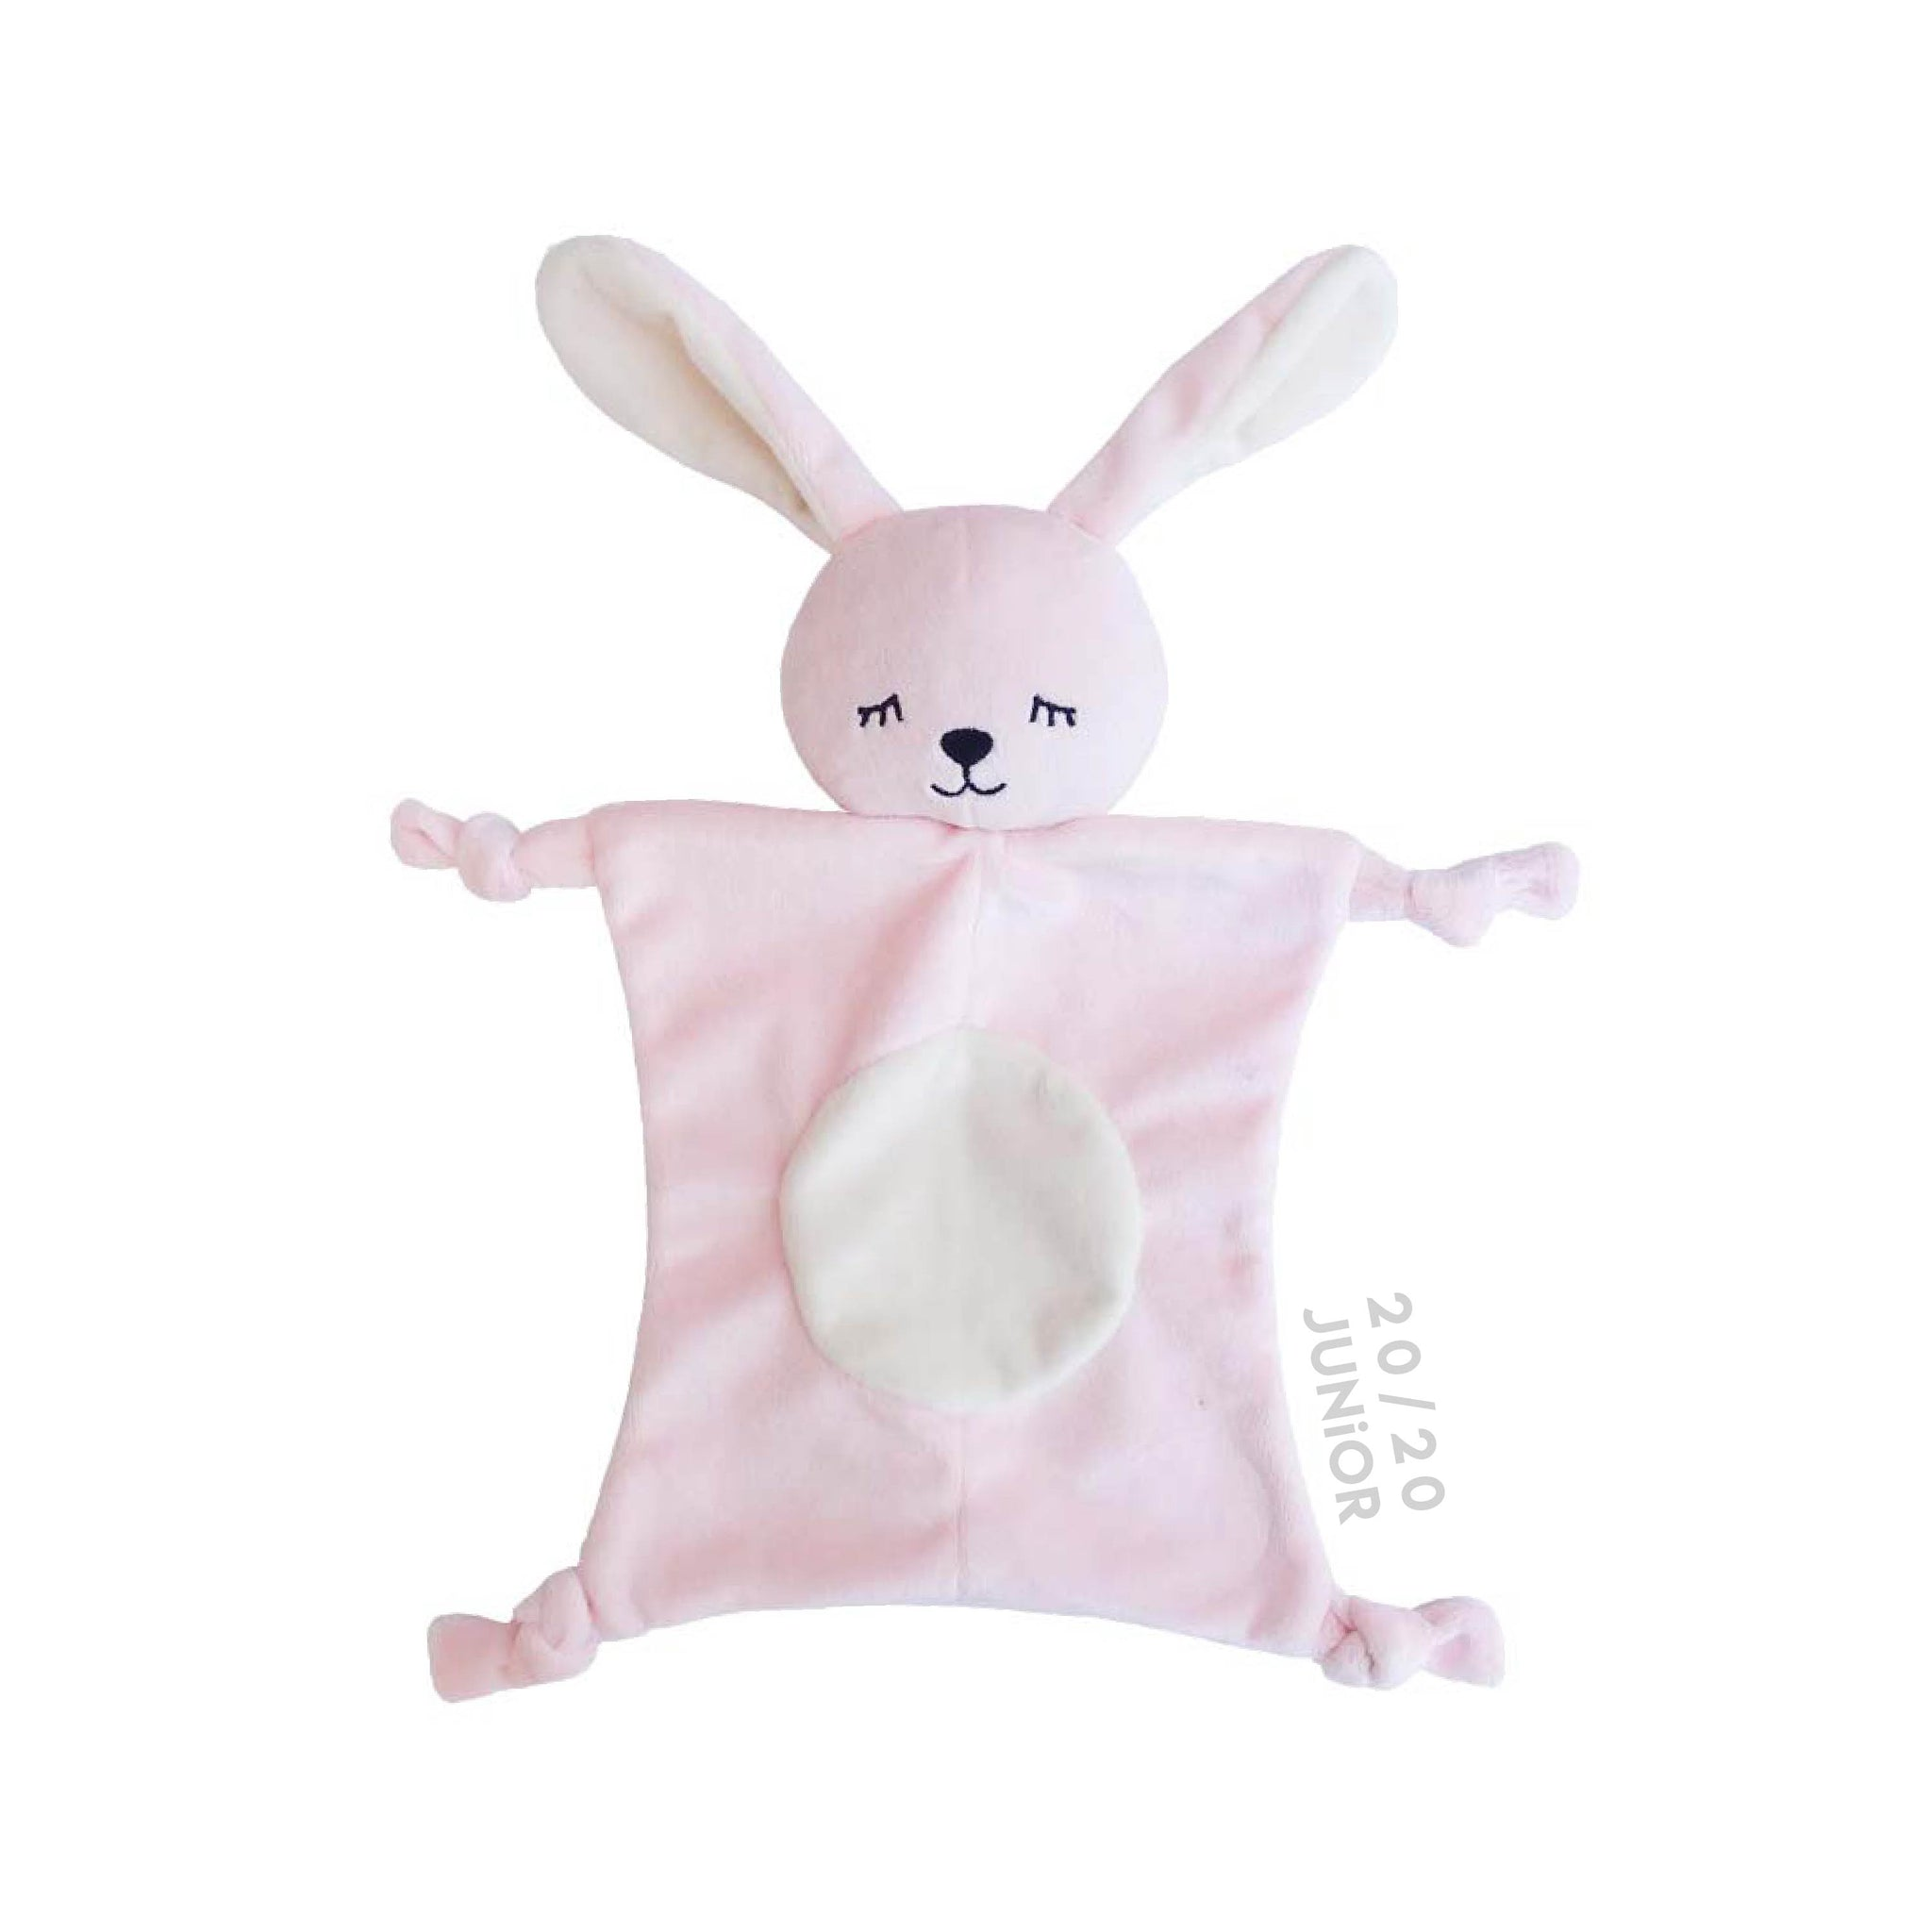 Mouth Towel Doll